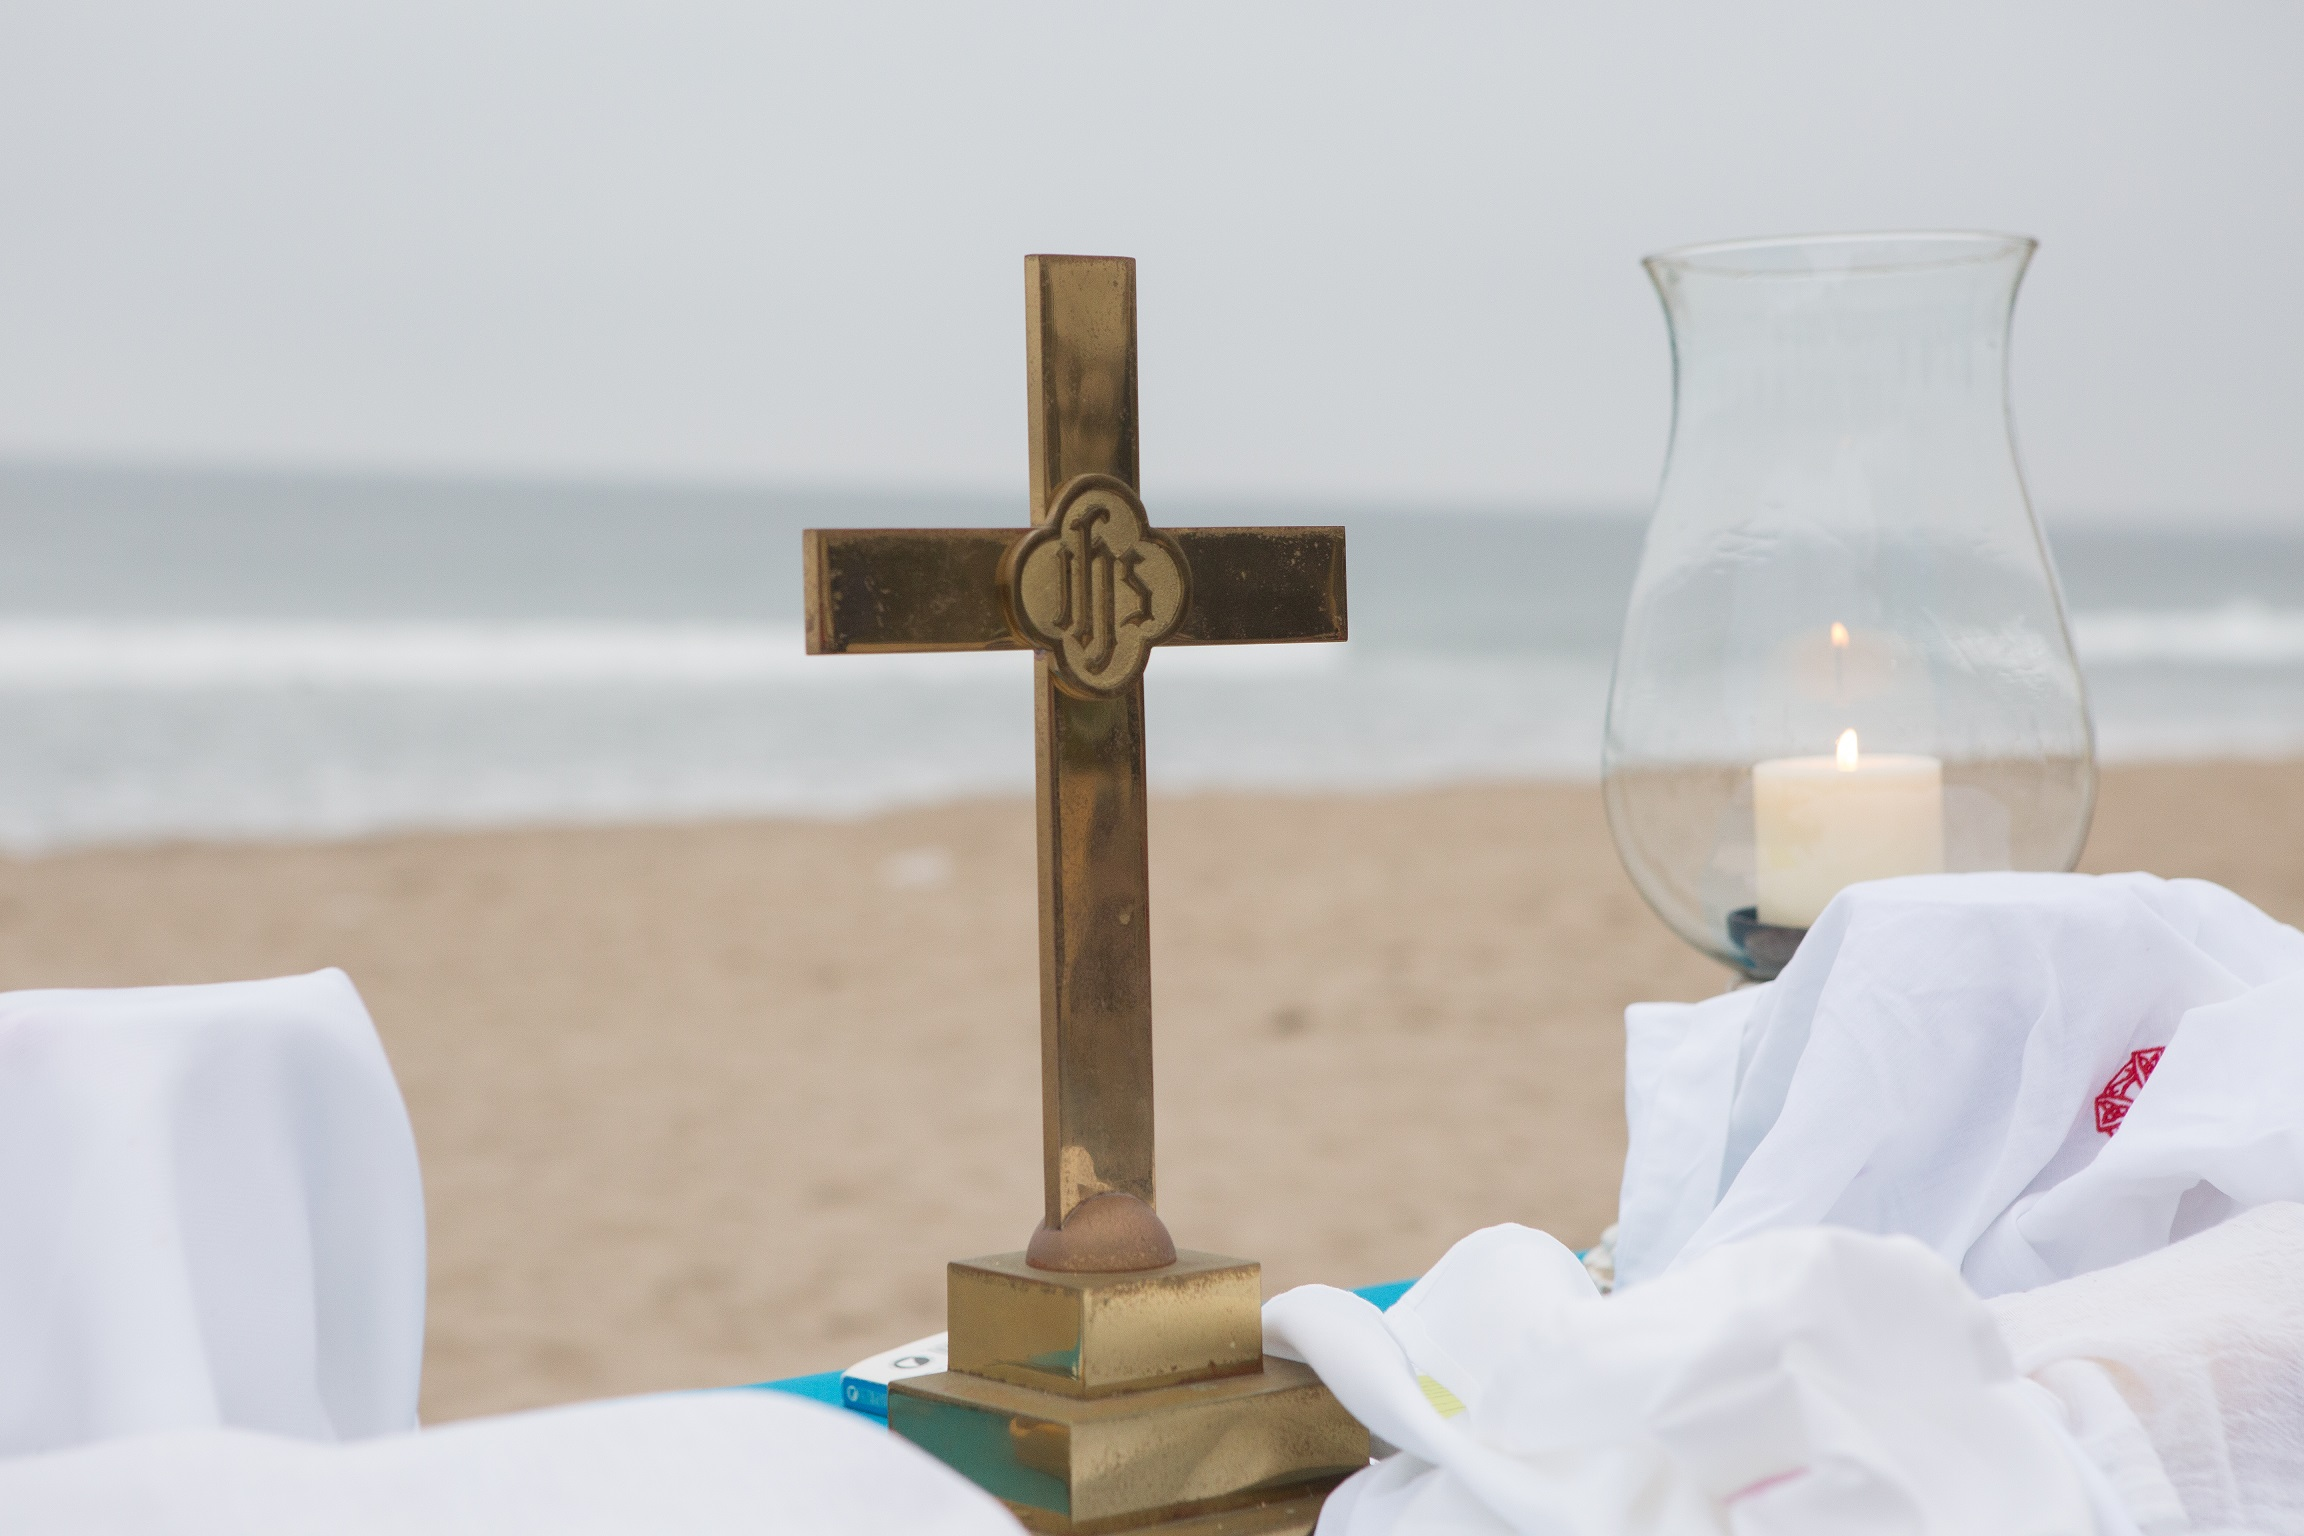 Cross on Table Beach BG sm.jpg